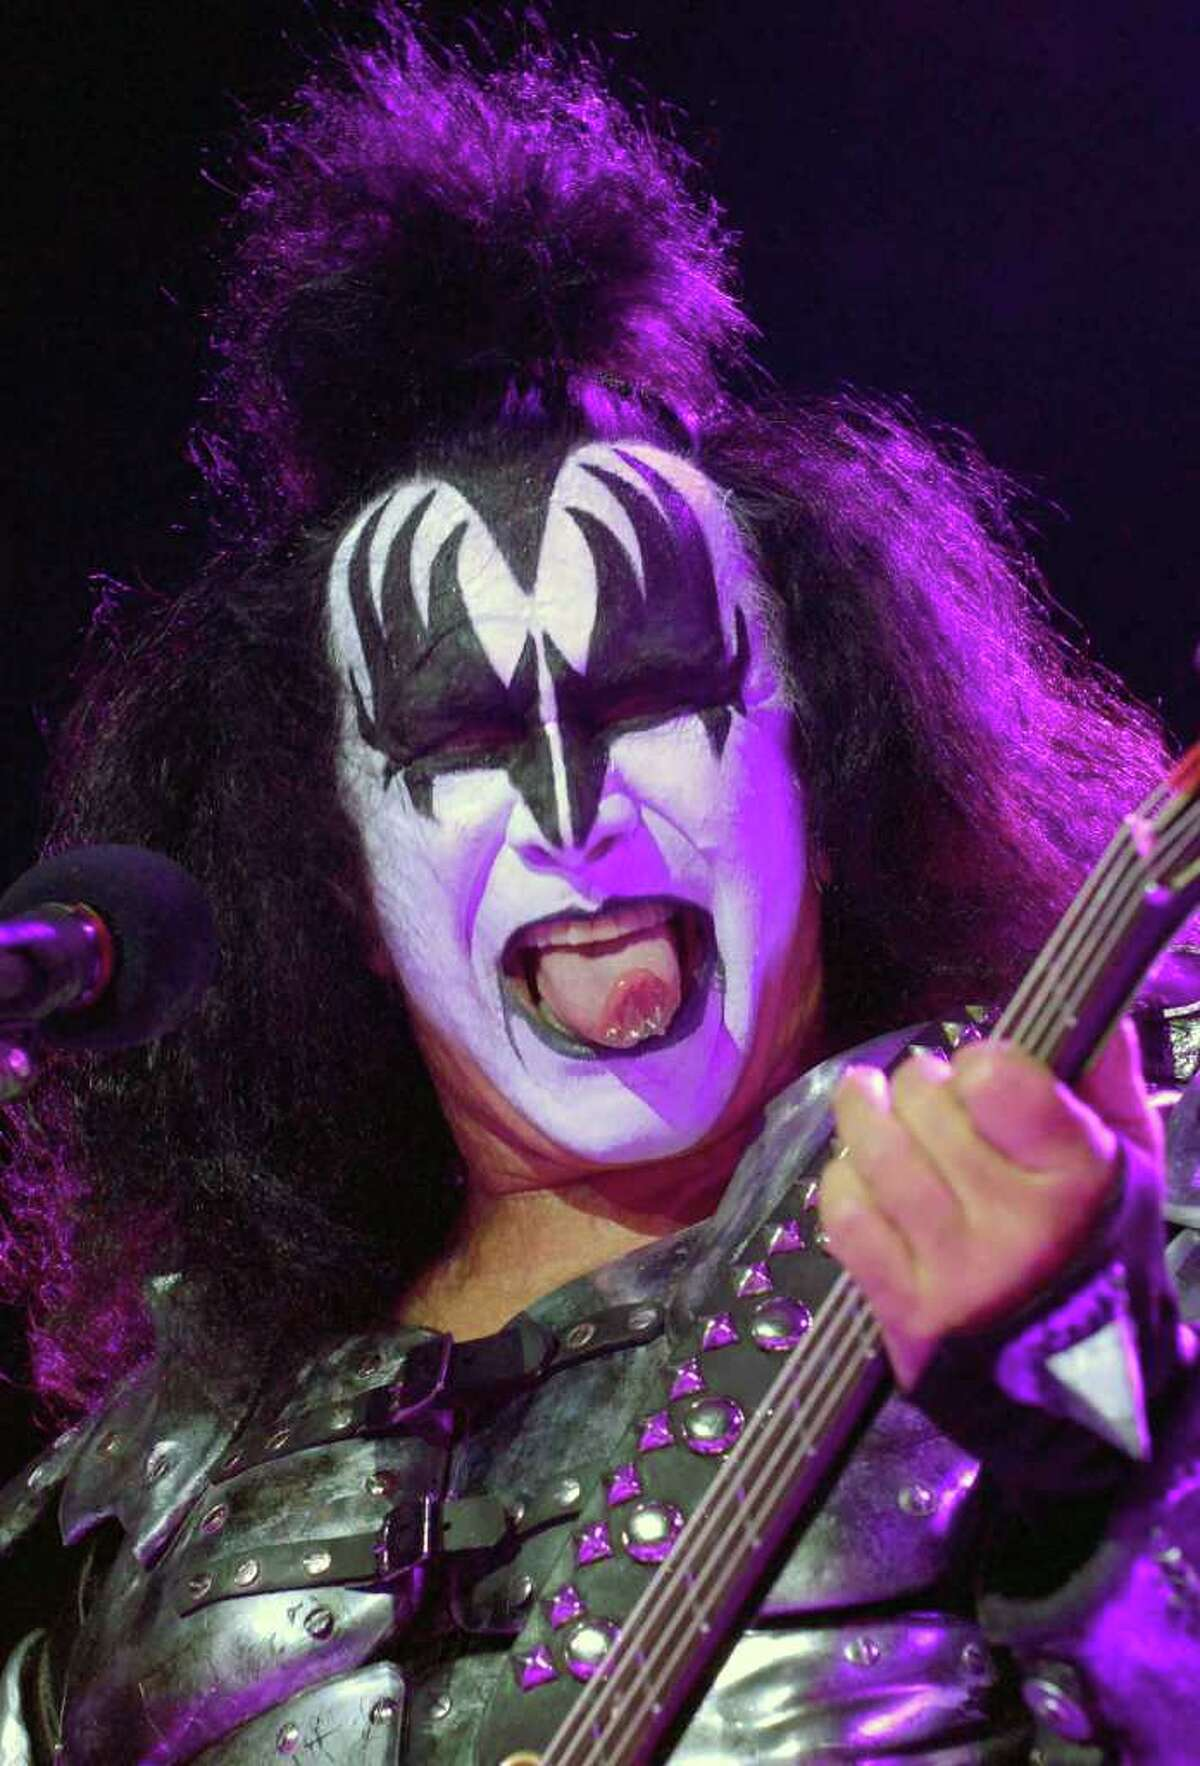 Gene Simmons performs with Kiss at the Saratoga Performing Arts Center on Tuesday, Aug. 17, 2010. ( Michael P. Farrell / Times Union )